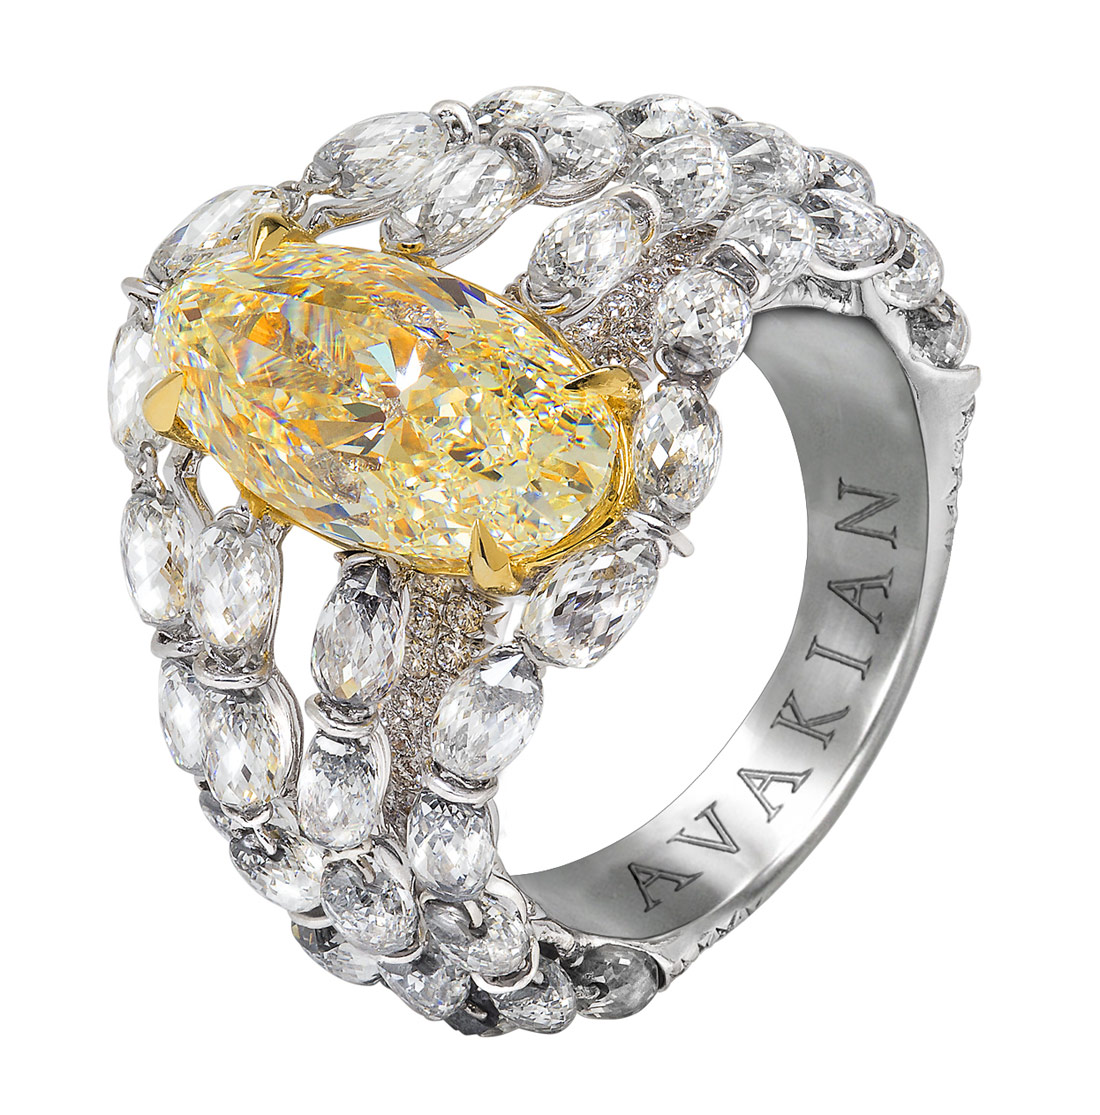 Avakian yellow diamond ring